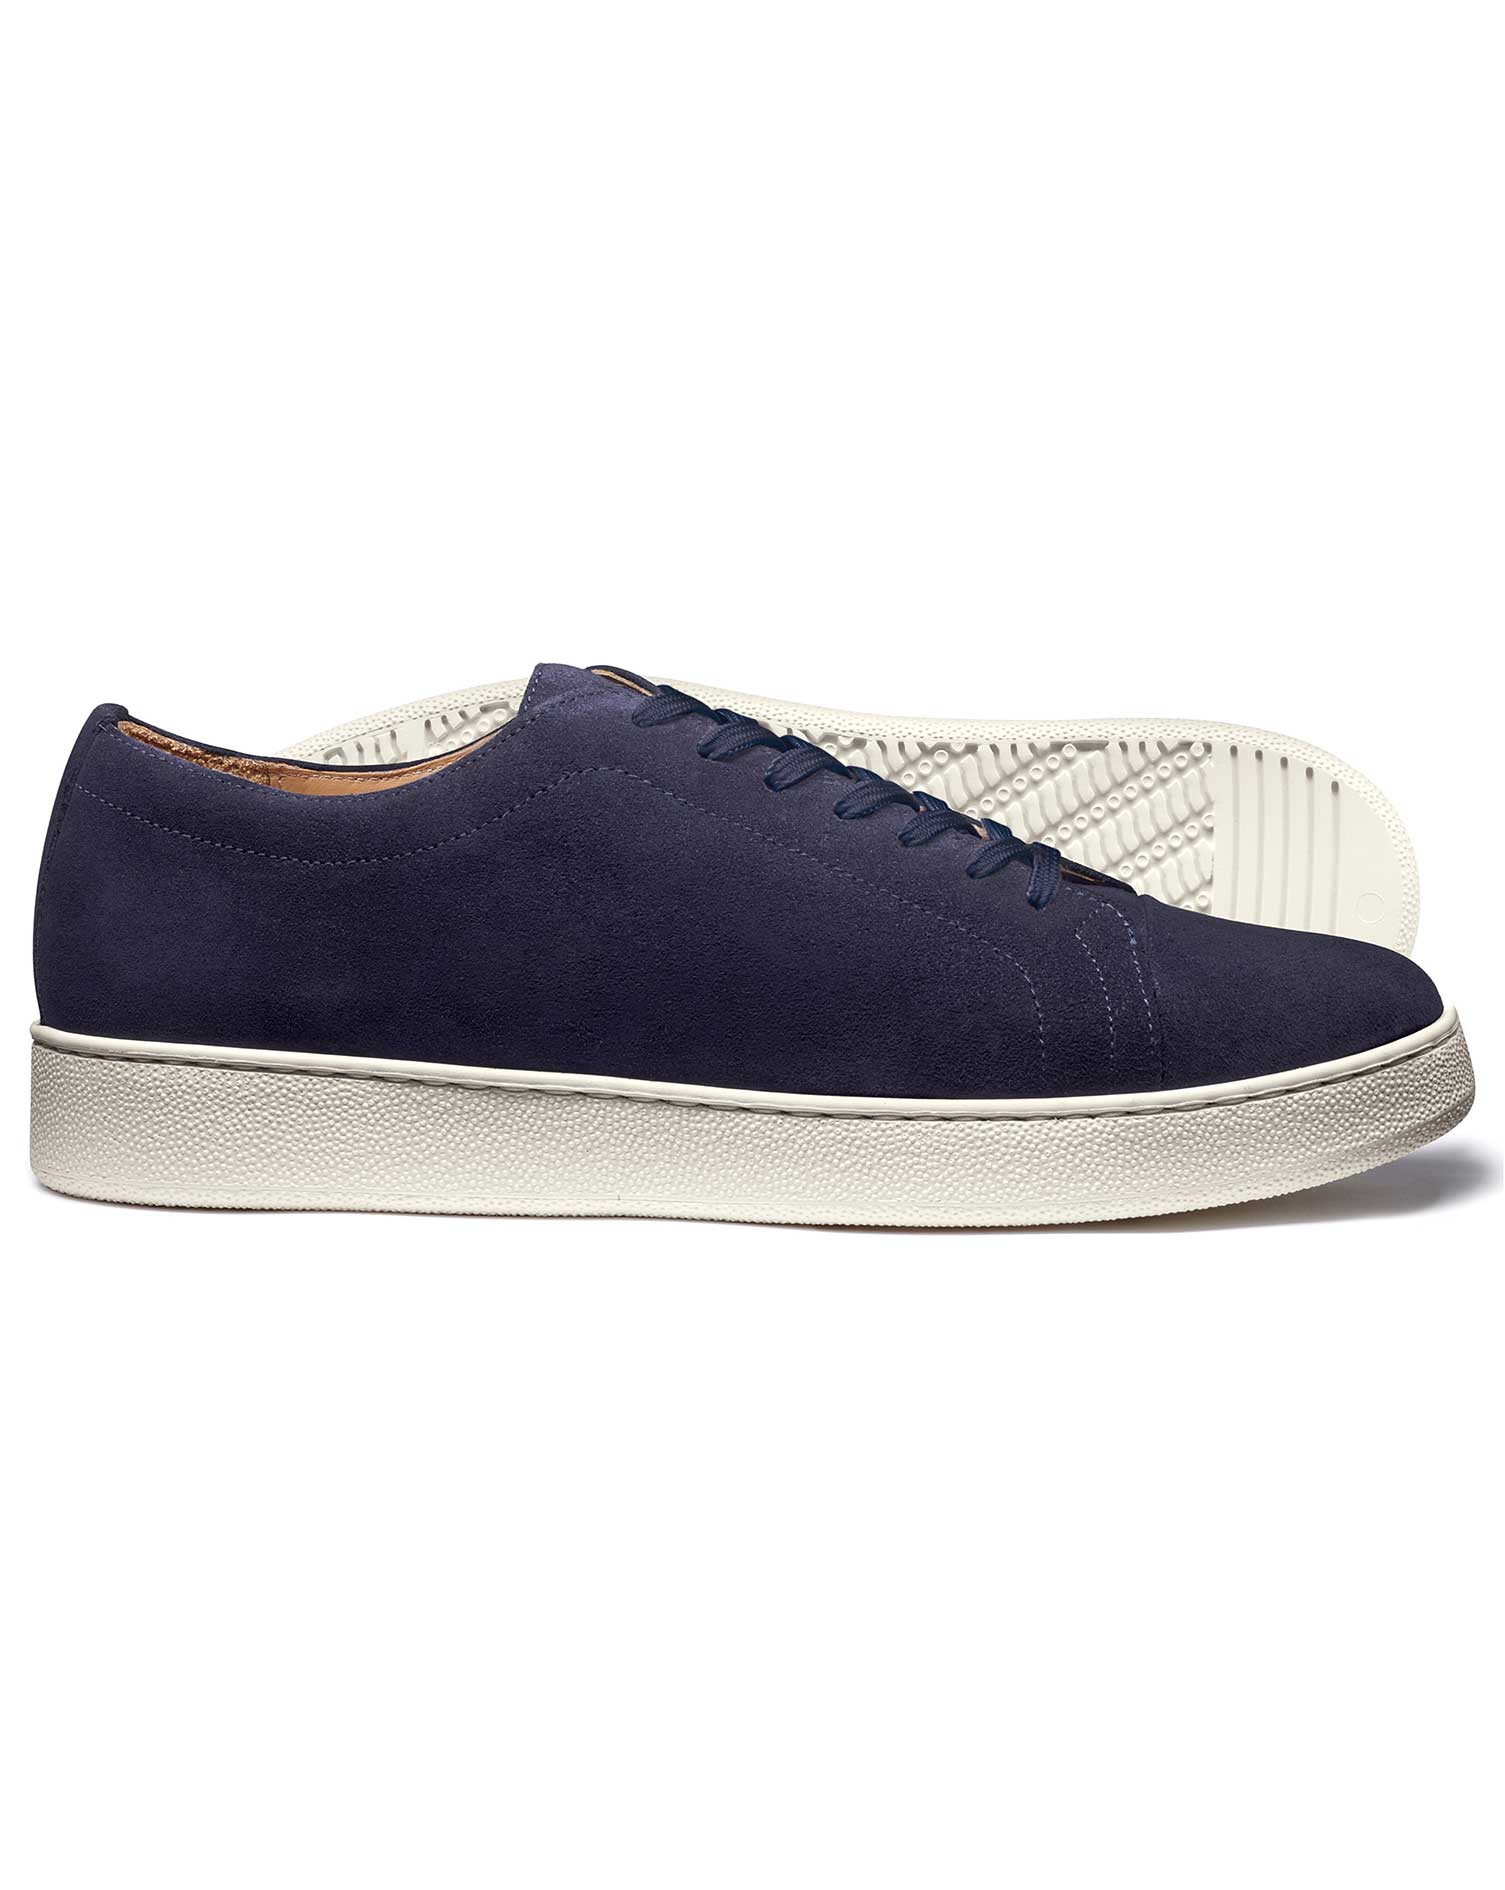 Navy Trainers Size 6 R by Charles Tyrwhitt